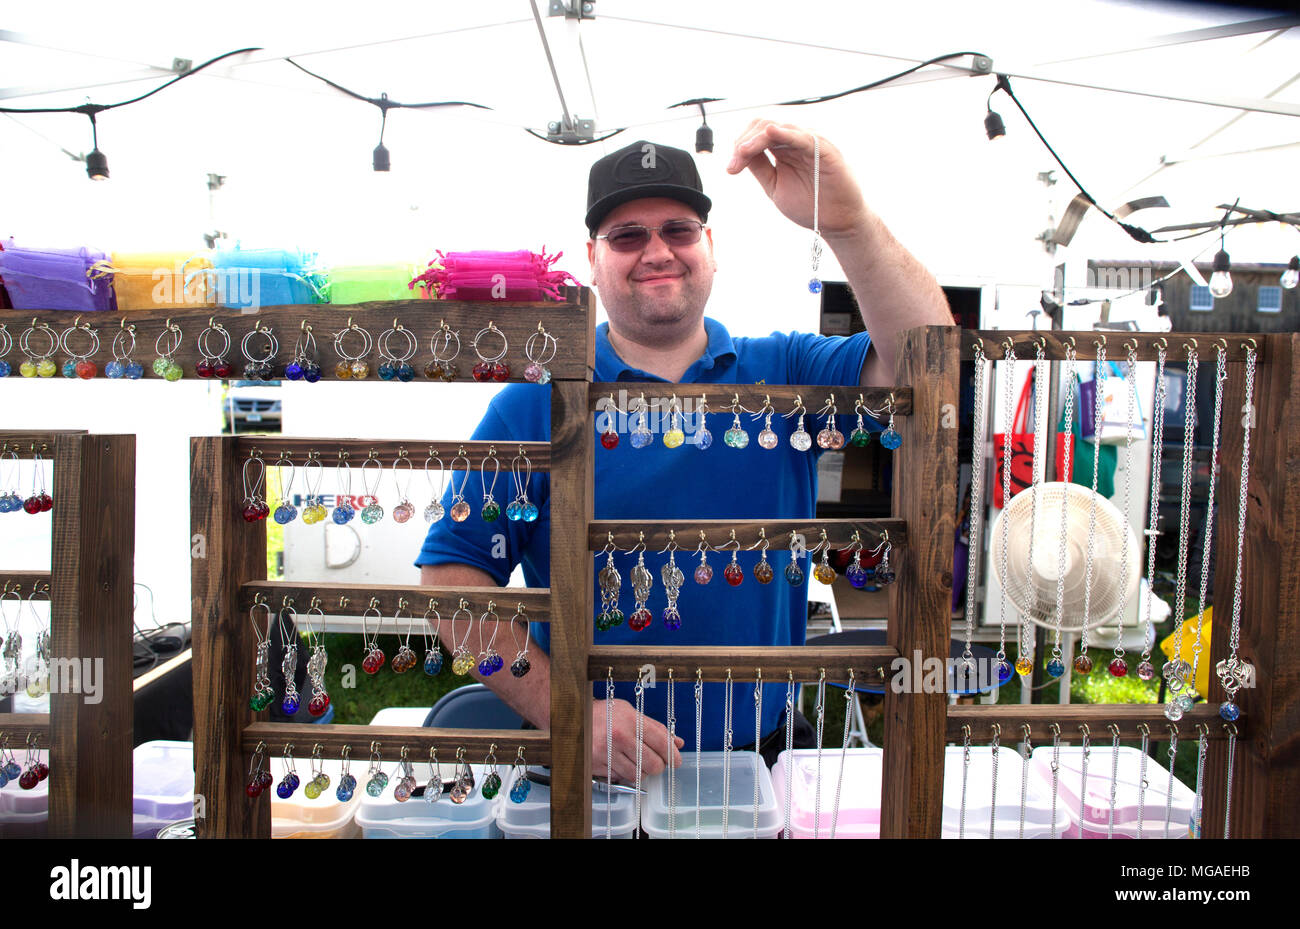 Proud small business owner displaying his handmade jewelry at a local art show - Stock Image